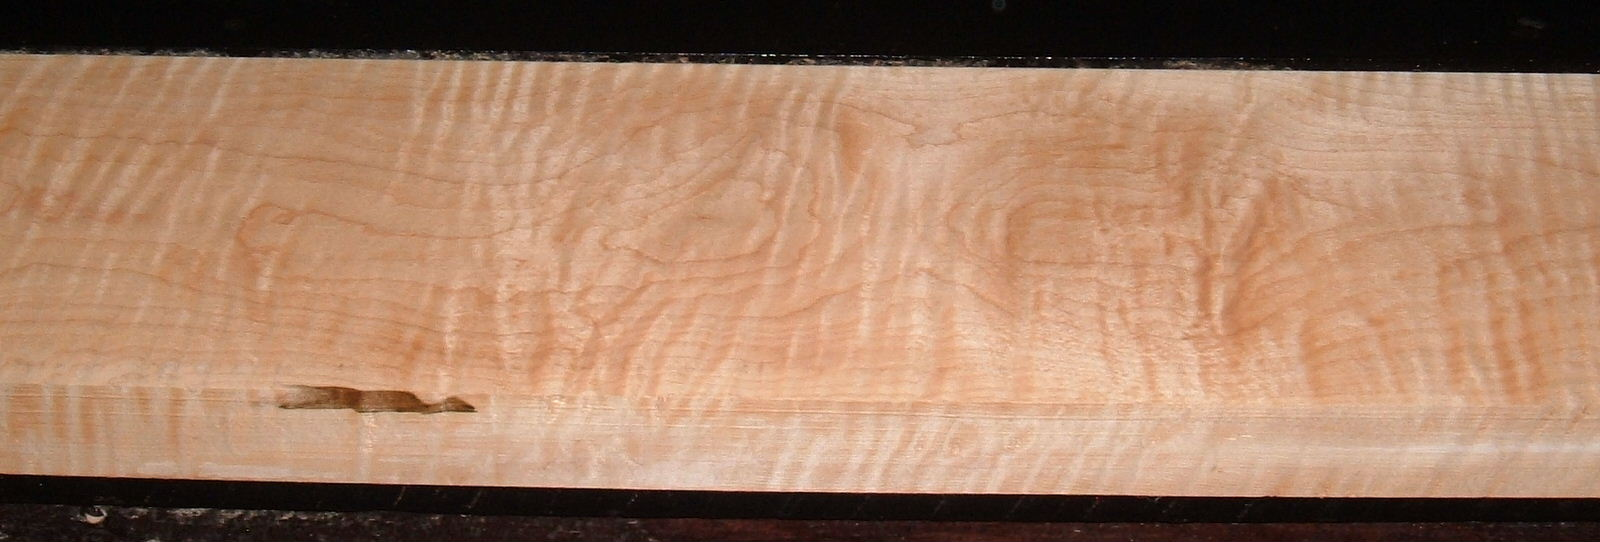 M2003-241, 1-11/16x6-7/8x52, Figure Curly Tiger Maple